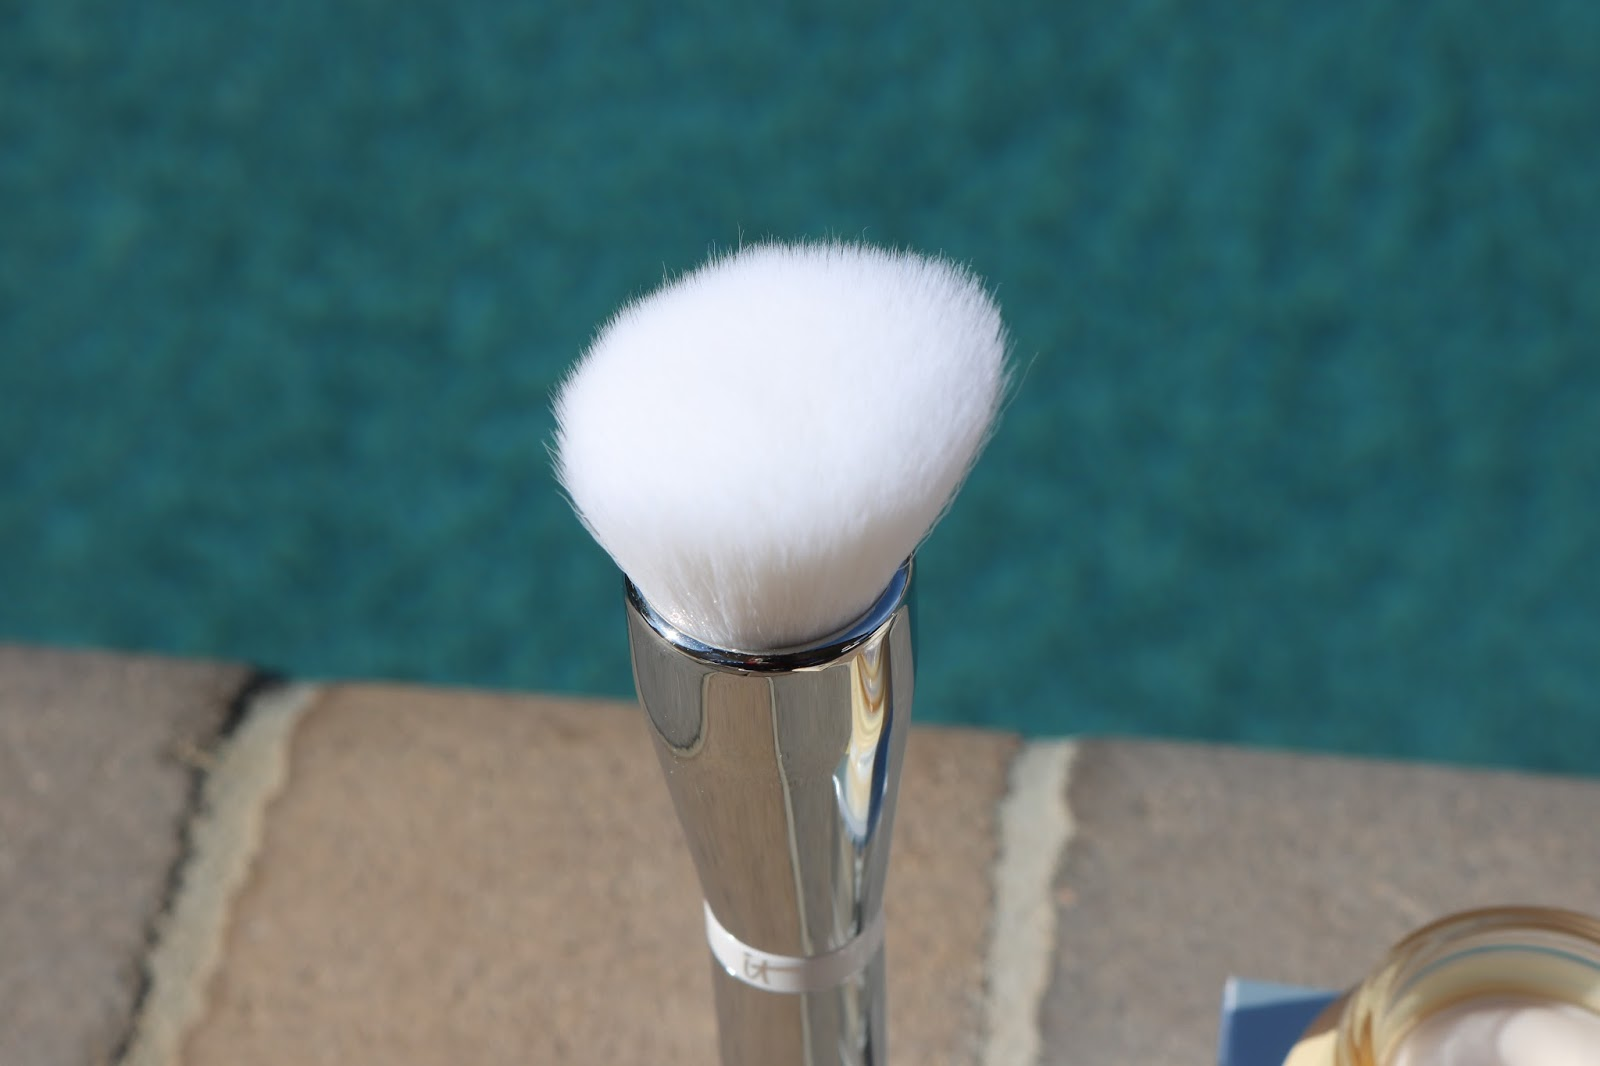 IT Cosmetics Heavenly Skin Skin-Smoothing Complexion brush